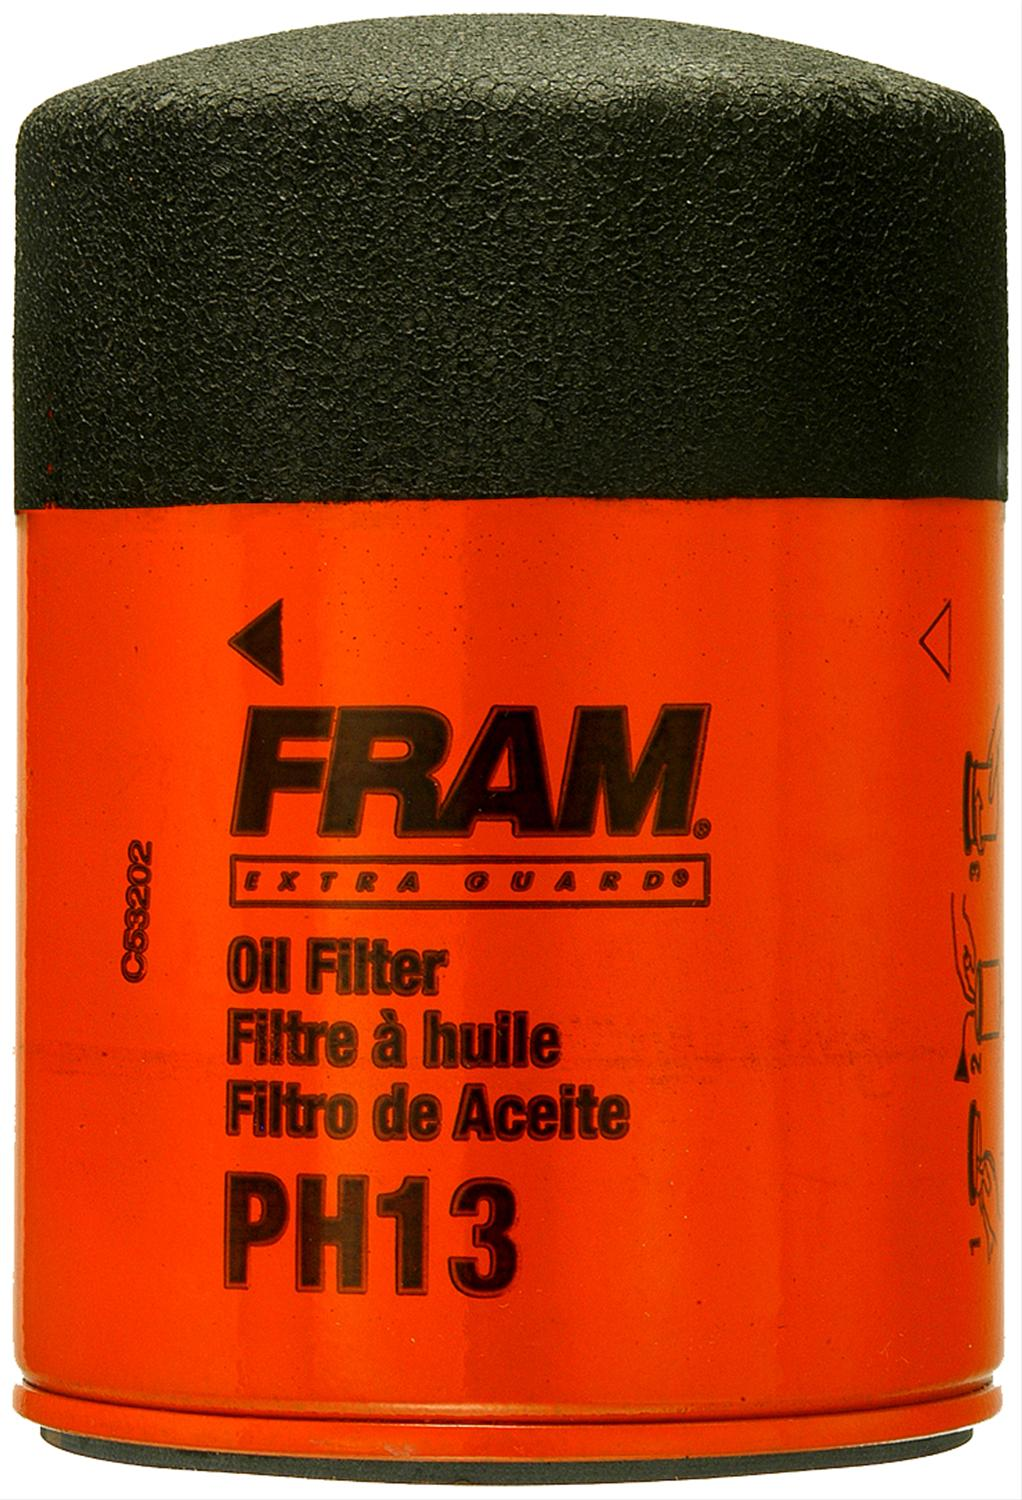 Fram Extra Guard Oil Filters Ph13 Free Shipping On Orders Over 49 Filter Top Fuel Racing At Summit